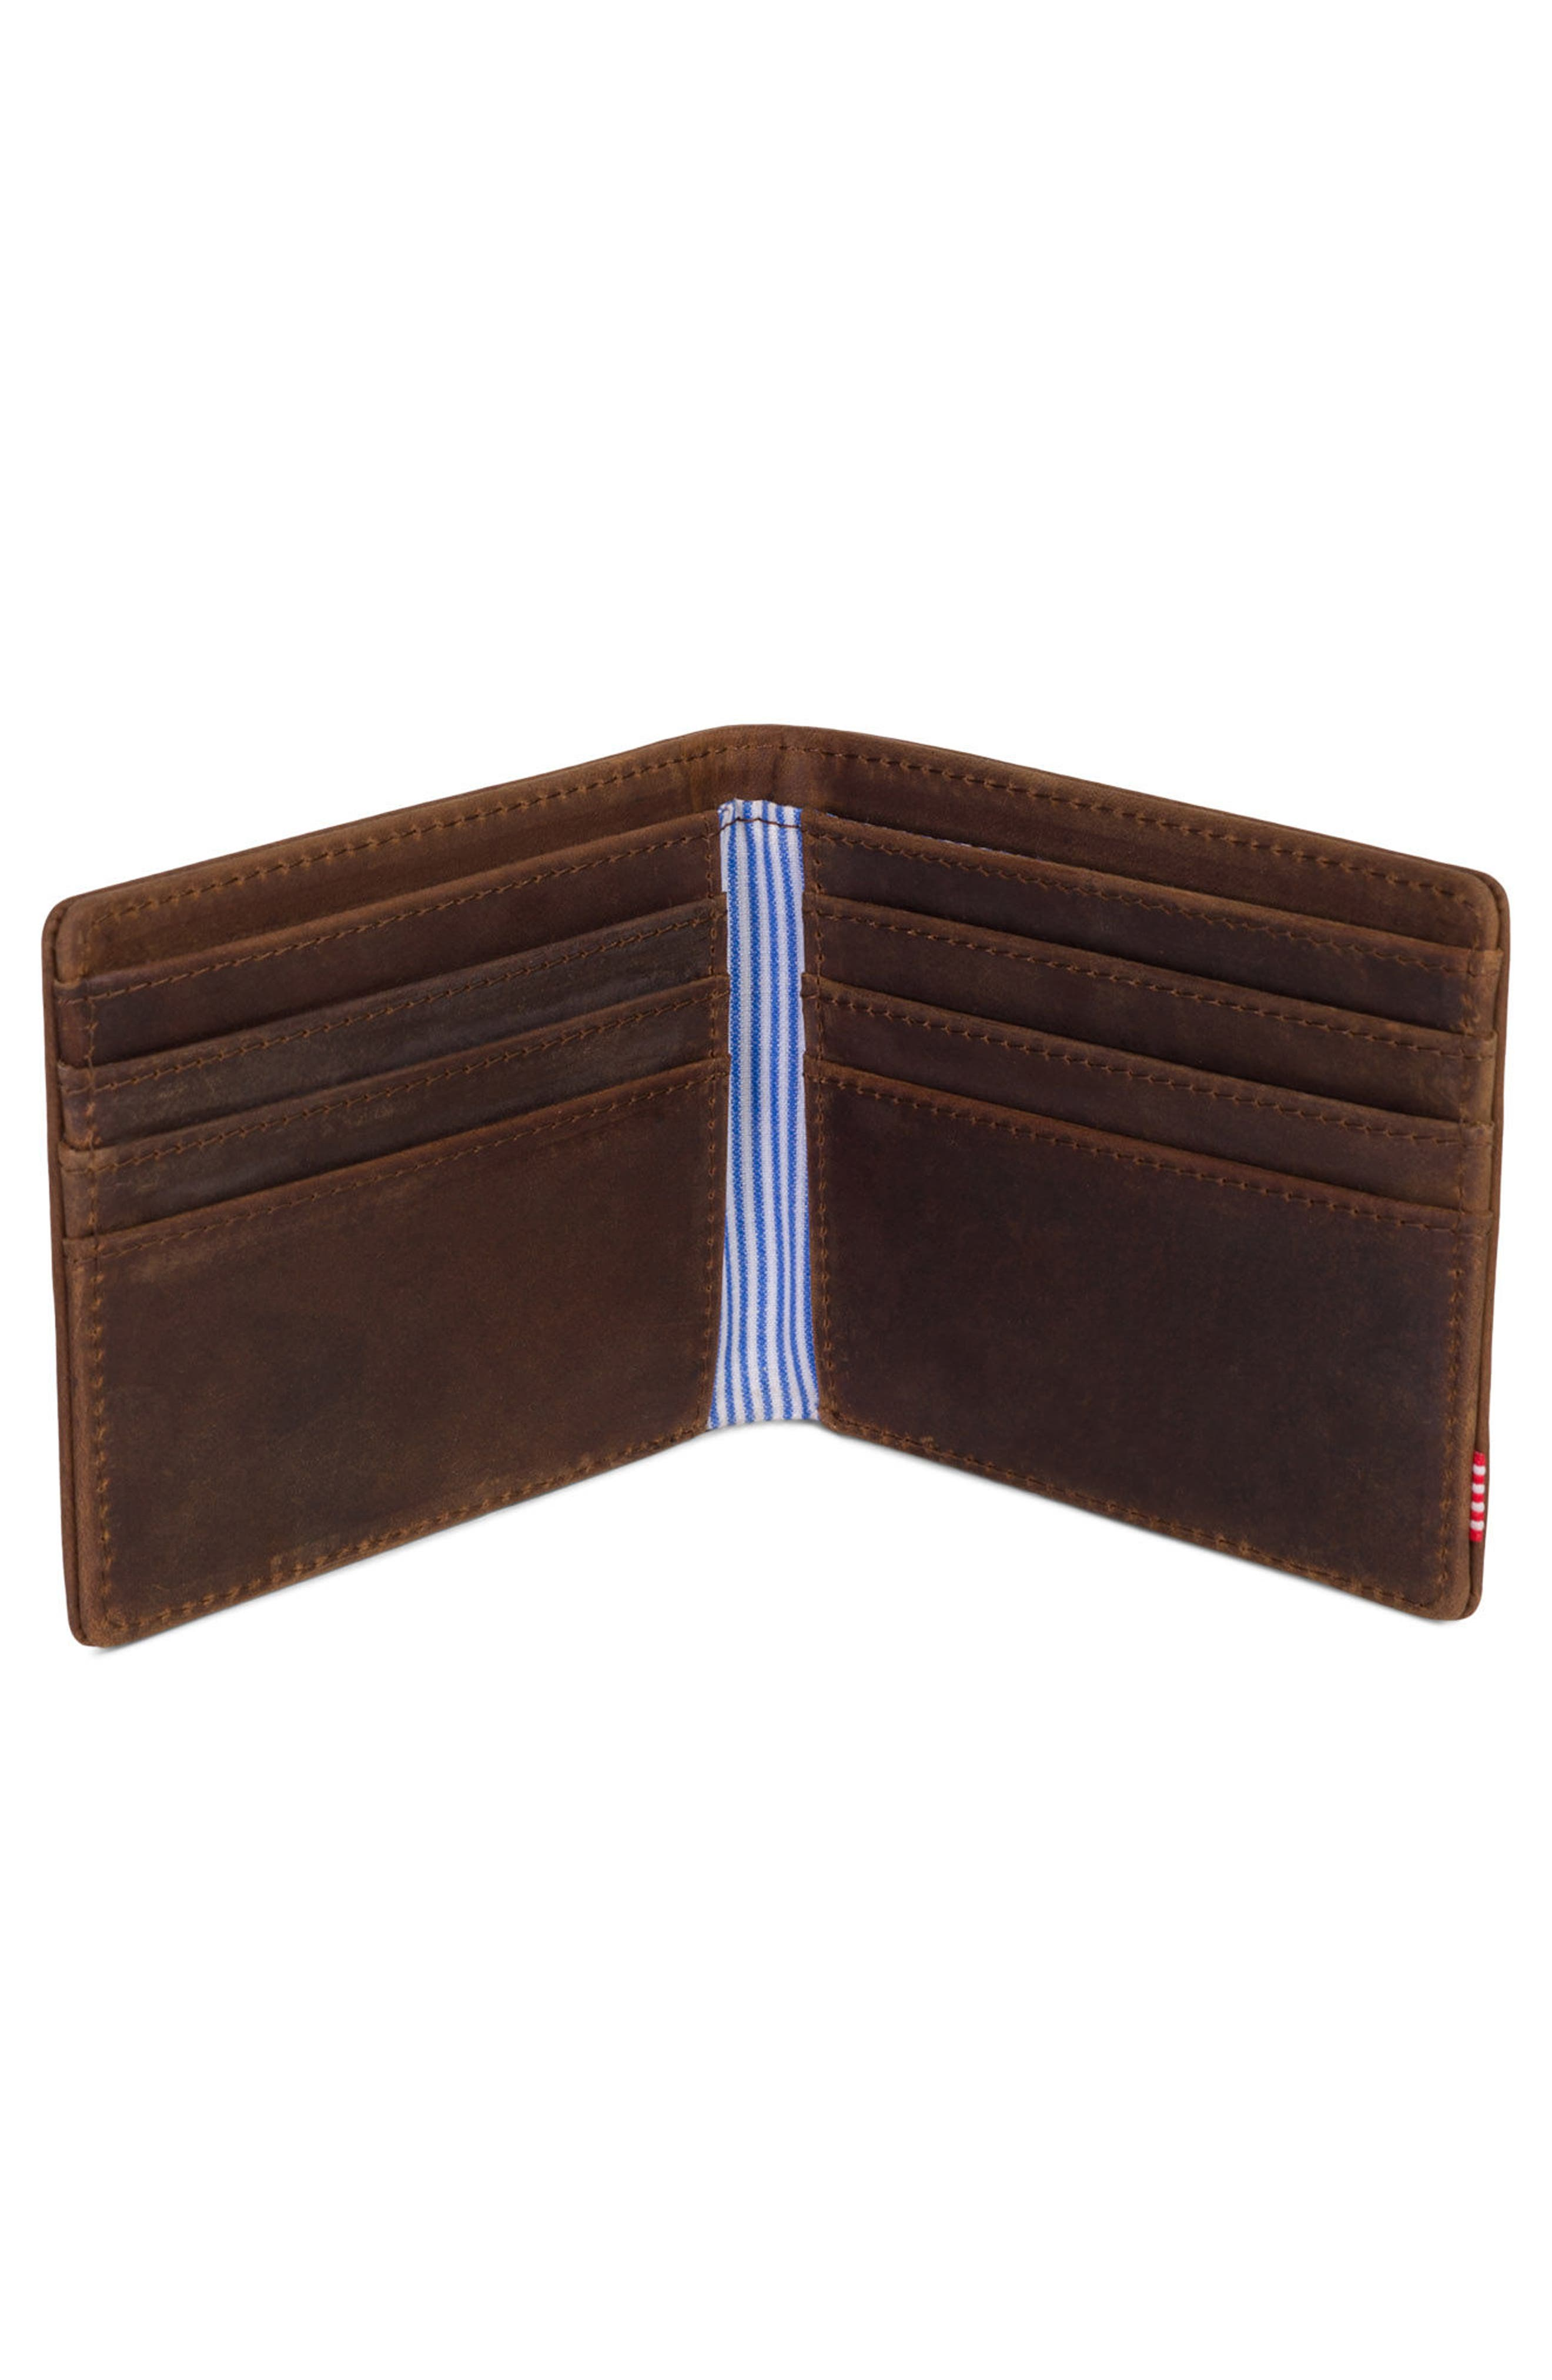 Roy Leather Wallet,                             Alternate thumbnail 3, color,                             210